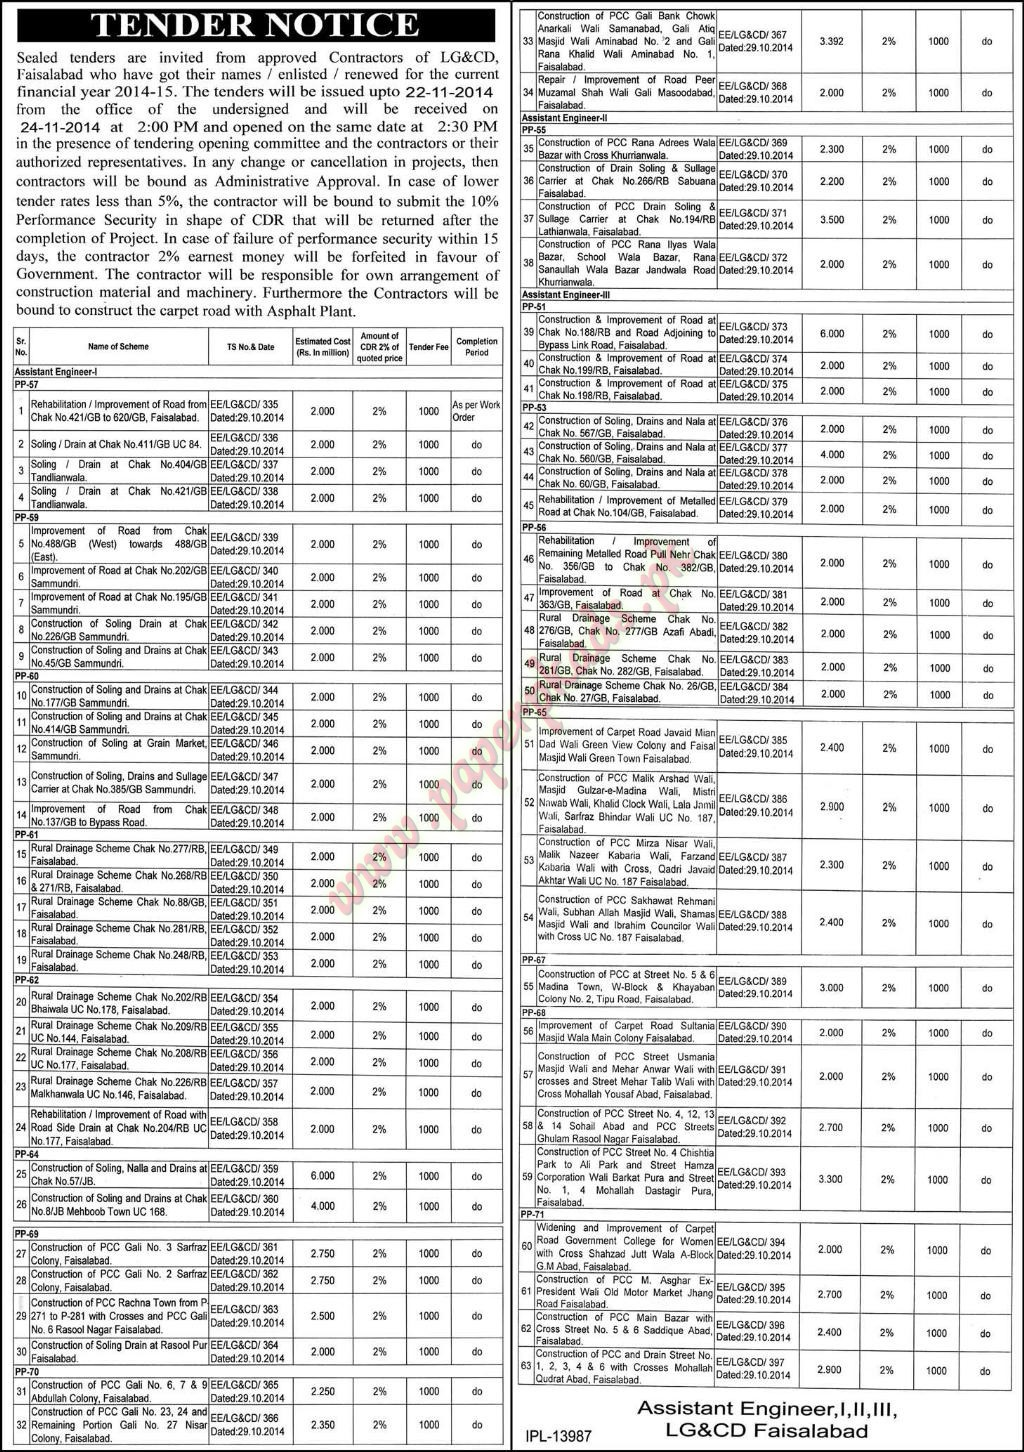 Assistant Engineer LG & CD Faisalabad - Express Tender 31 October 2014